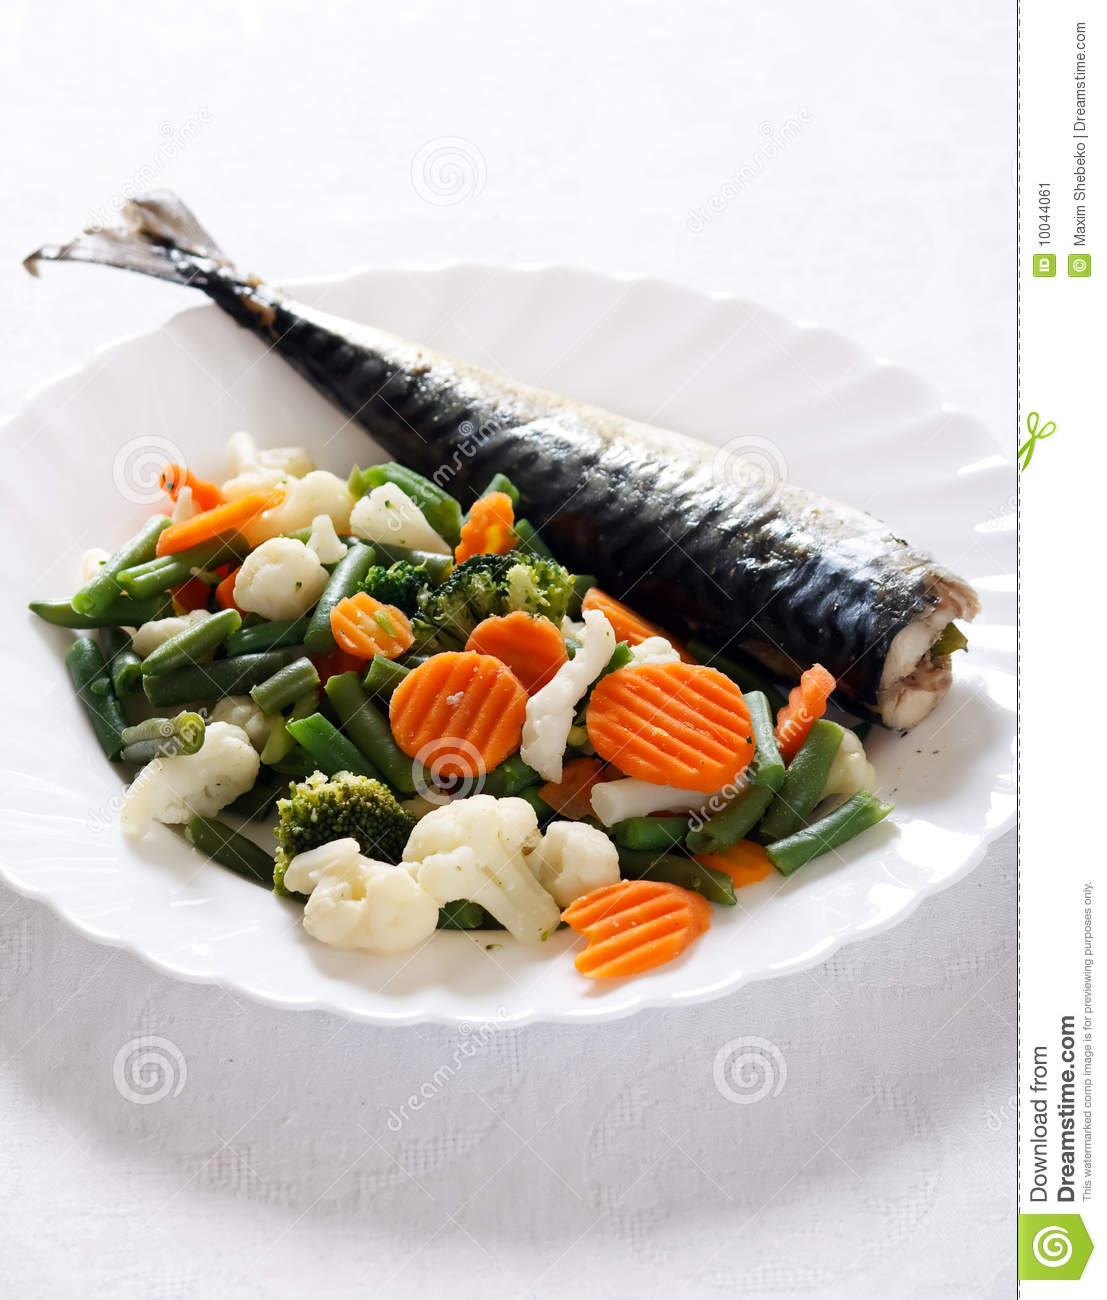 Grill fish with vegetables stock image image 10044061 for What vegetables go with fish